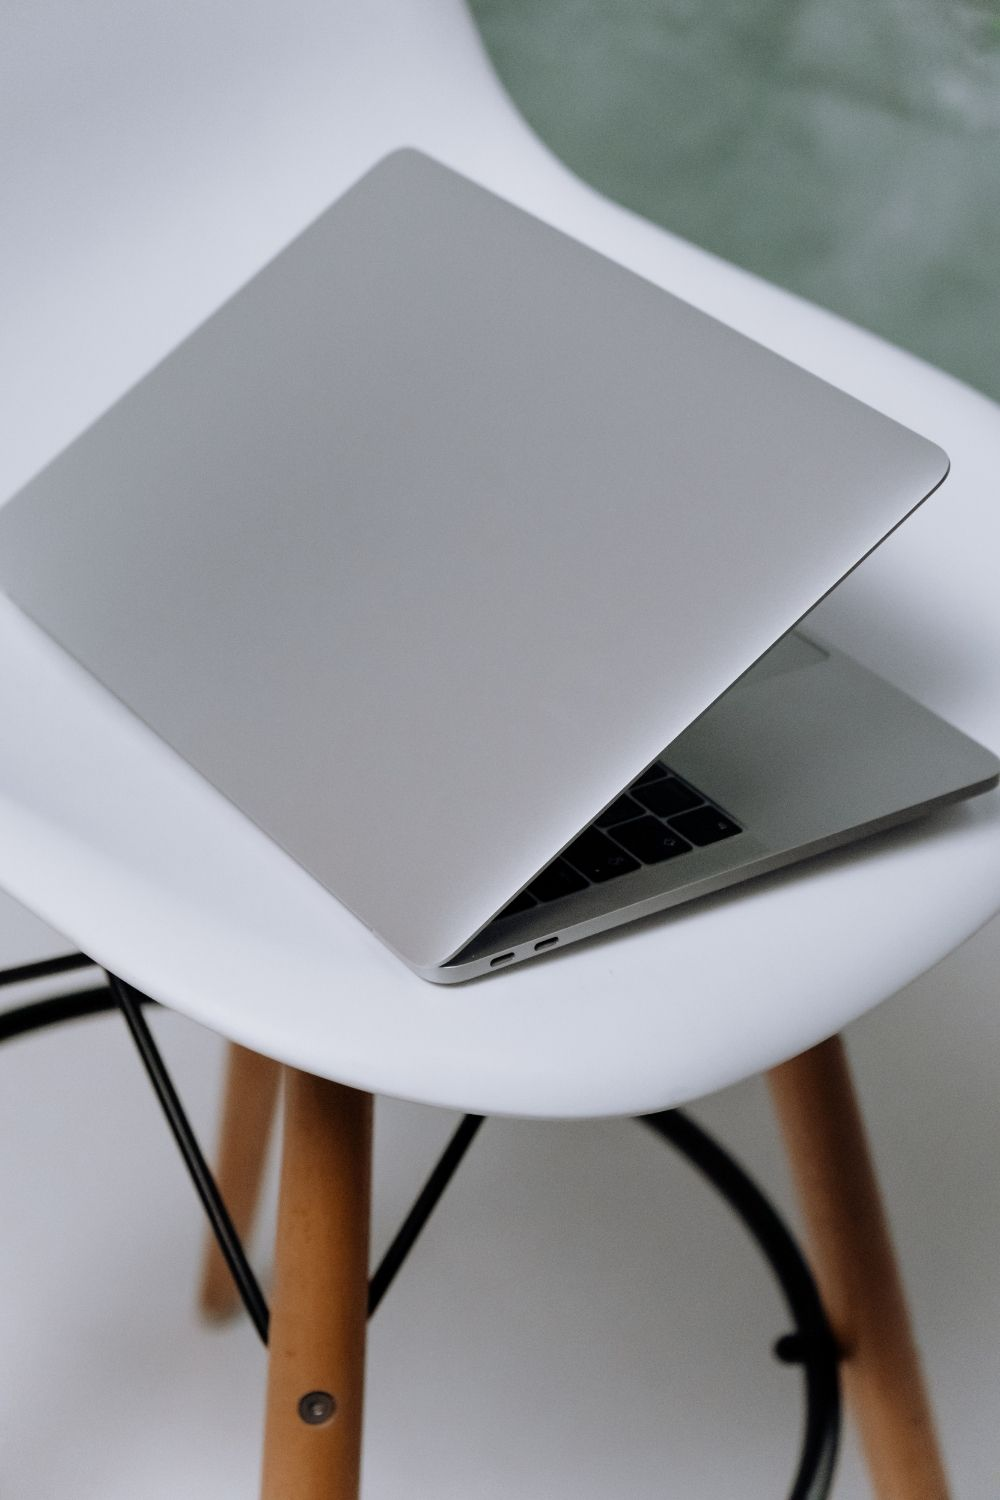 Macbook on top of white chair with brown legs